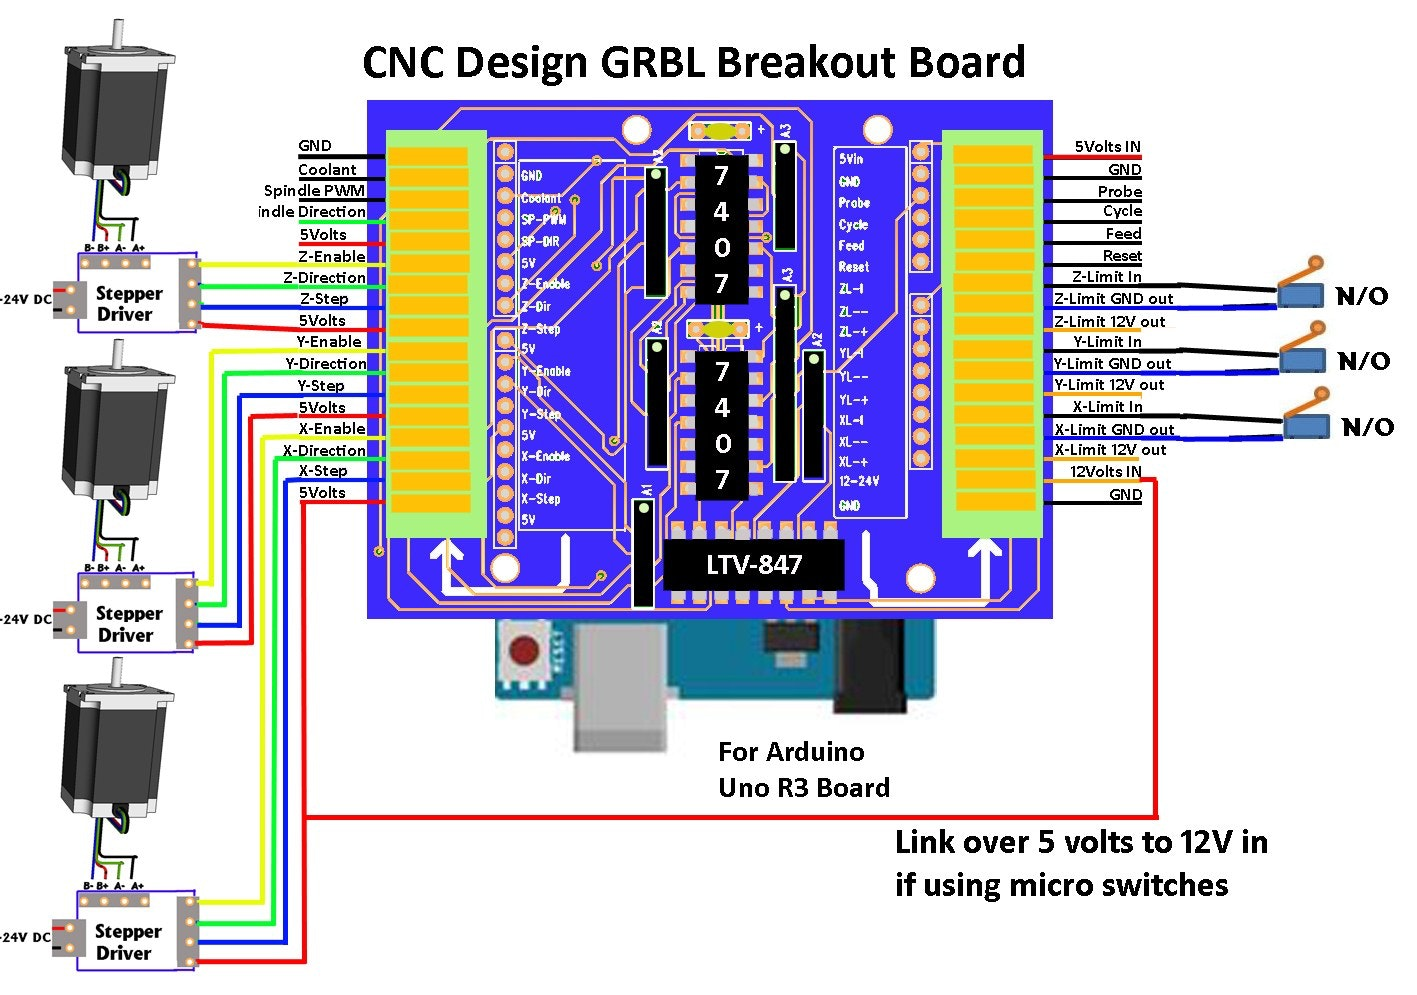 switches for cnc wiring diagram best wiring librarycnc limit switch wiring diagram arduino easy wiring diagrams carrier limit switch wiring diagram cnc limit